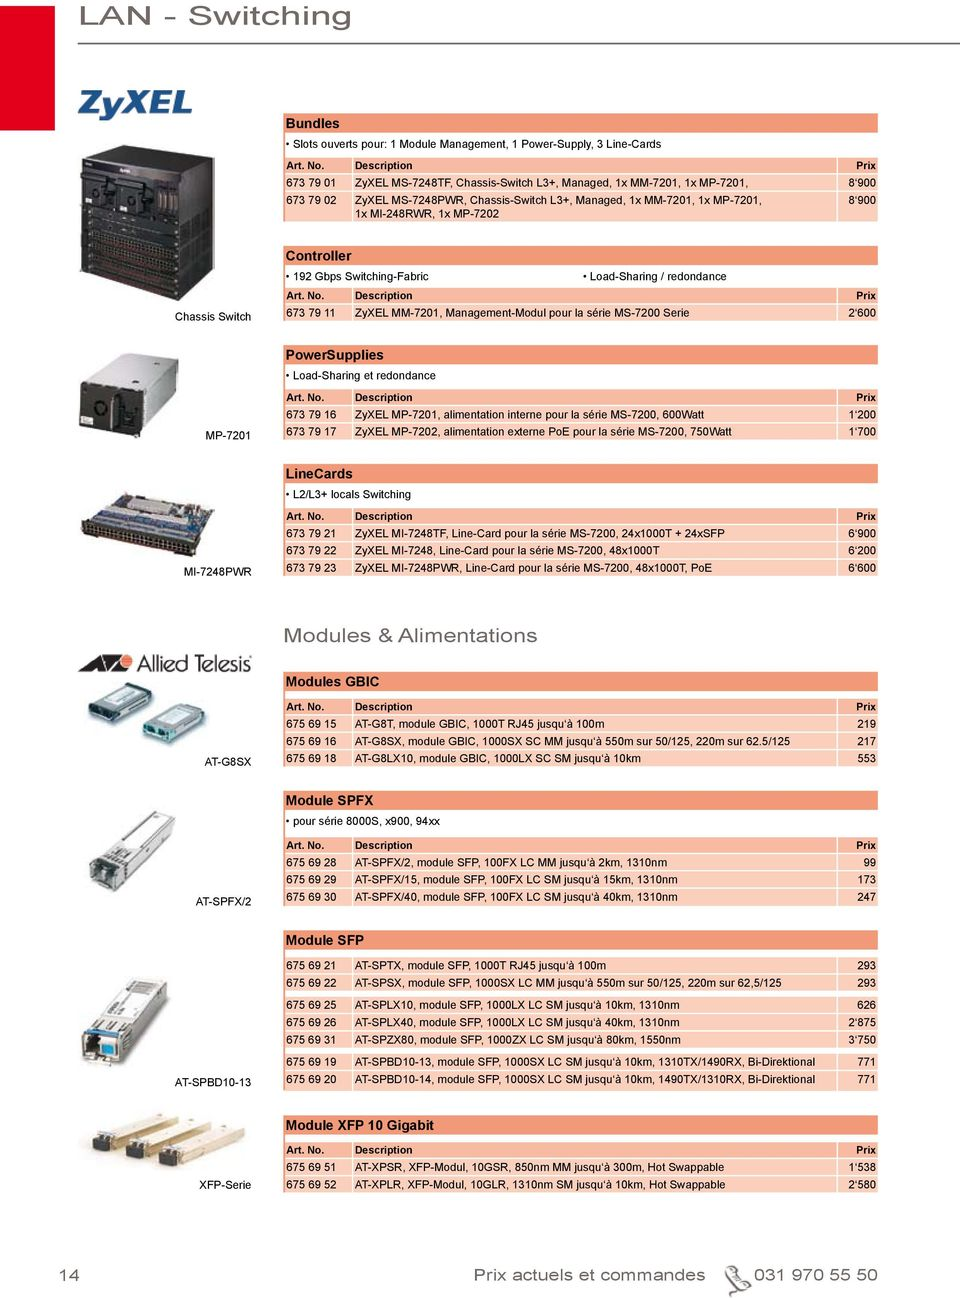 Management-Modul pour la série MS-7200 Serie 2 600 PowerSupplies Load-Sharing et redondance MP-7201 673 79 16 ZyXEL MP-7201, alimentation interne pour la série MS-7200, 600Watt 1 200 673 79 17 ZyXEL